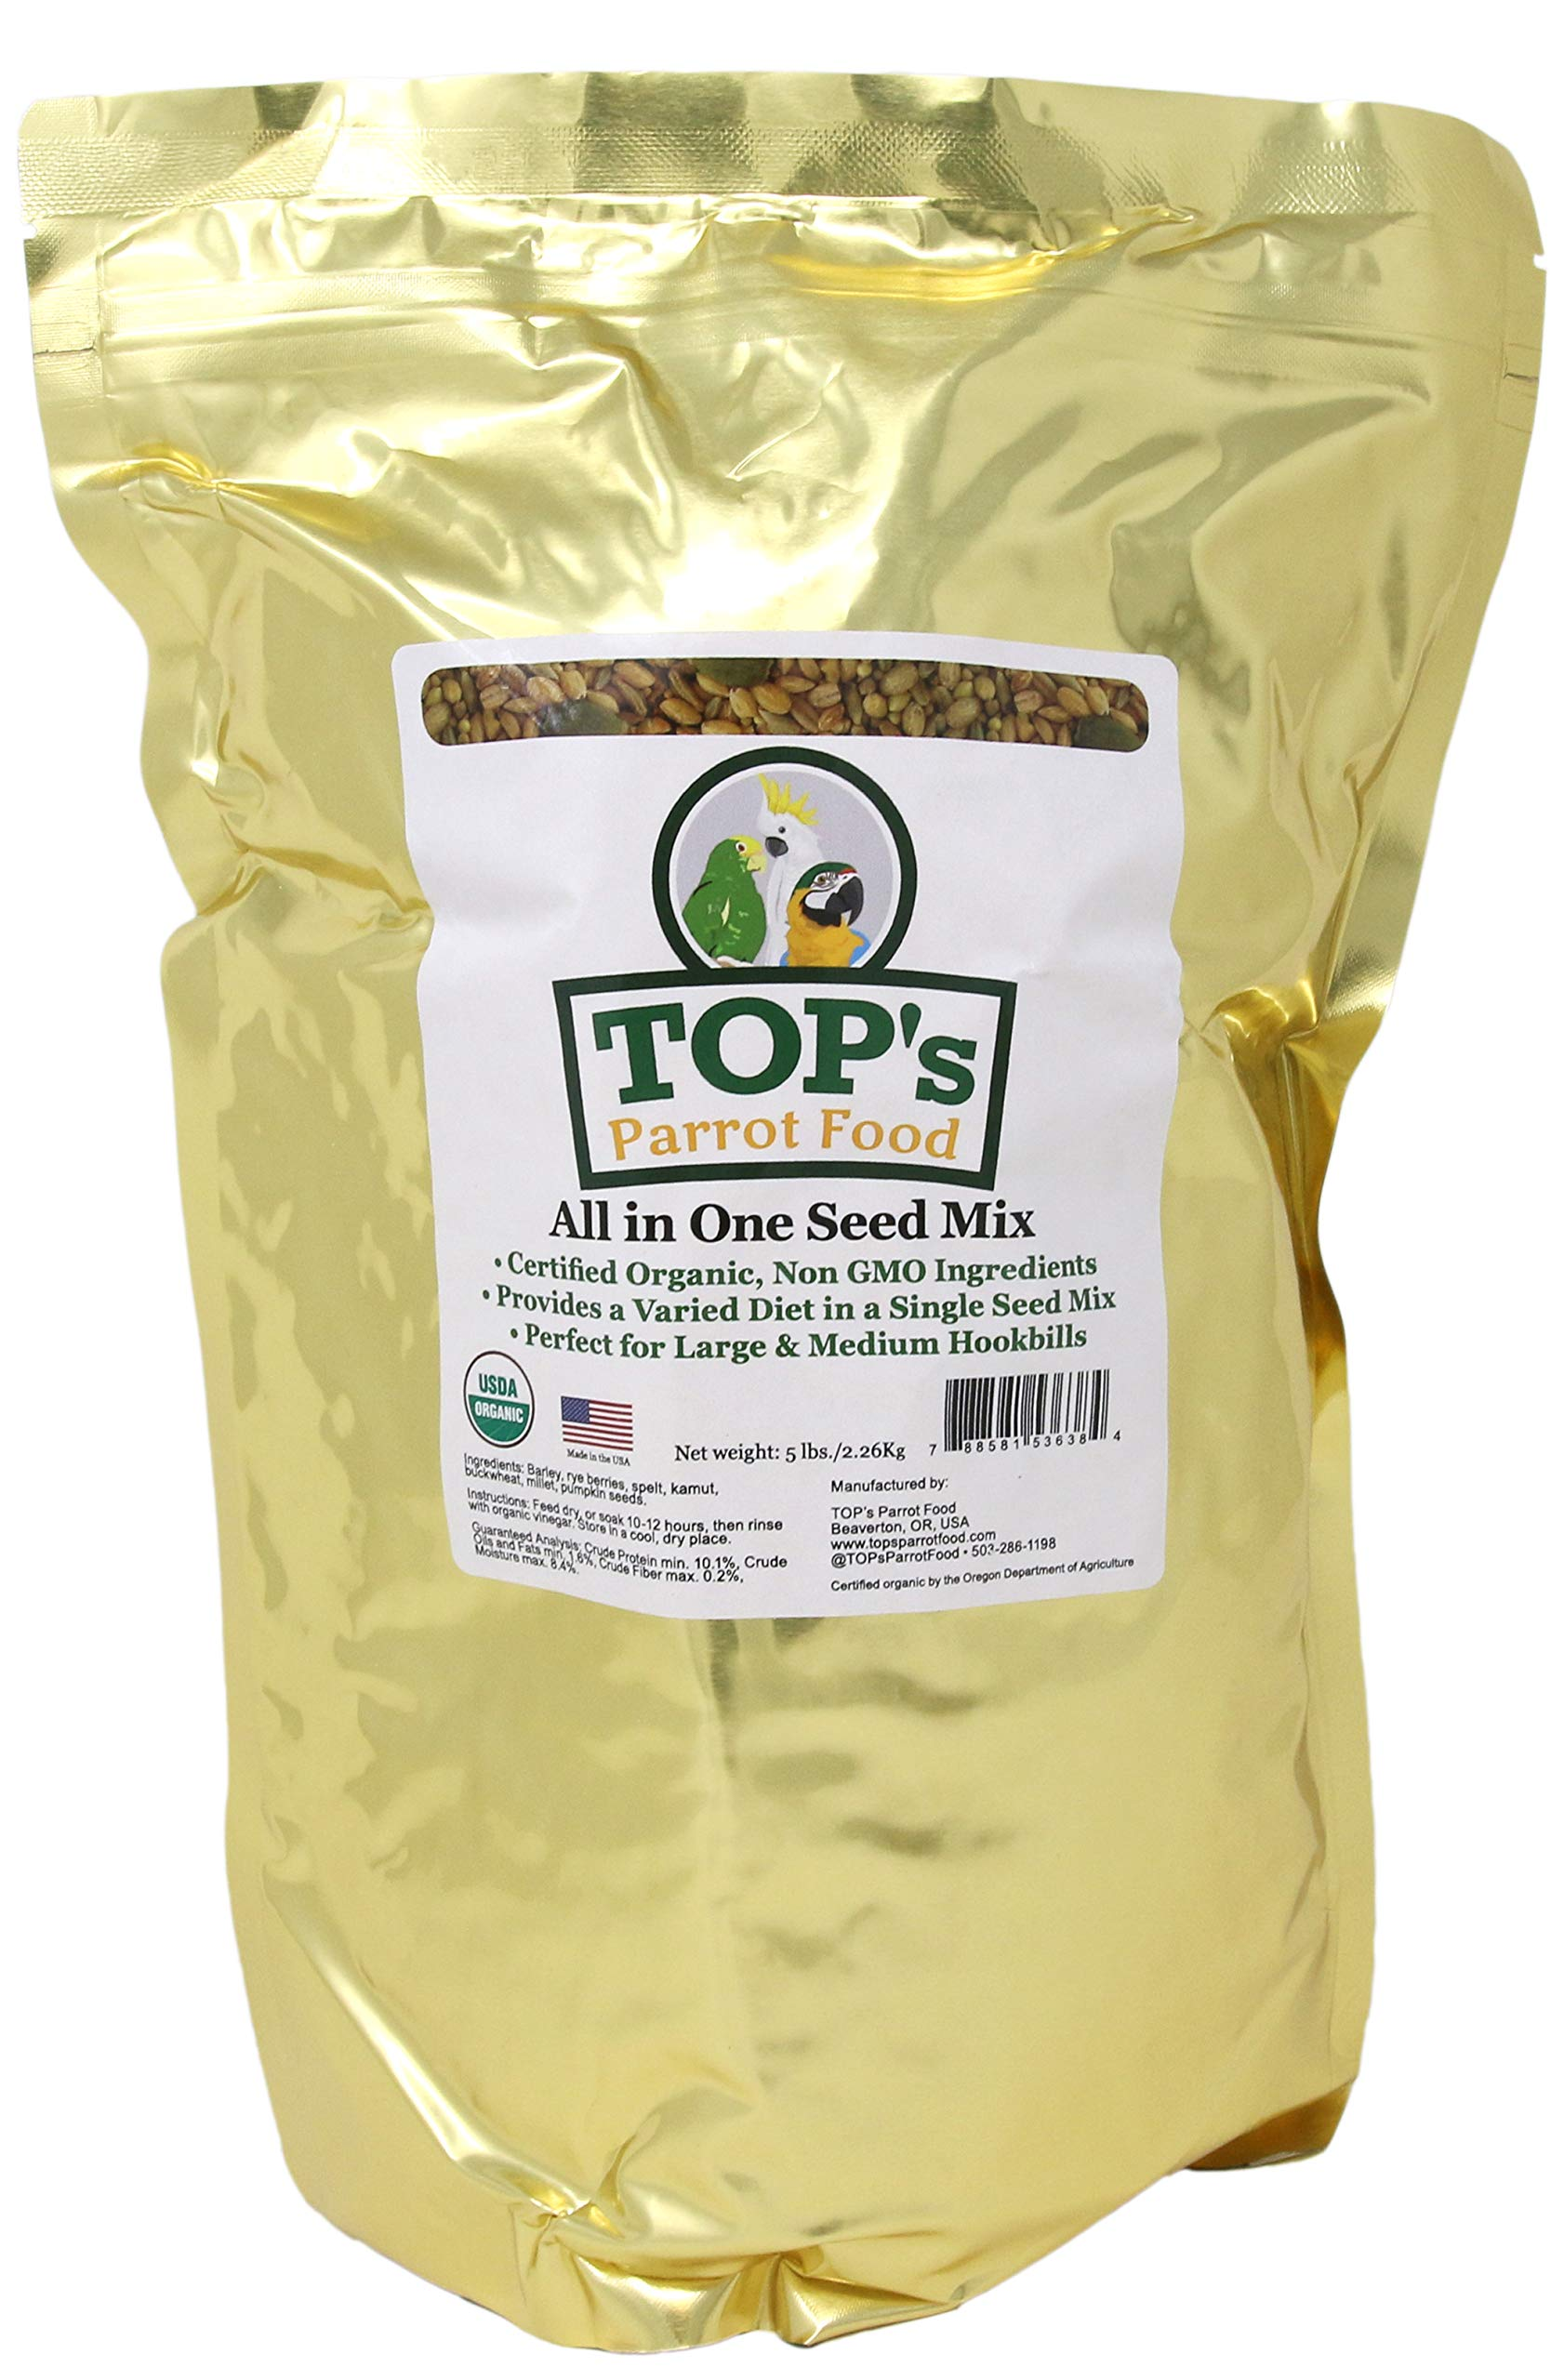 TOP All in One Seed Mix 5 Lb by TOP's Parrot Food